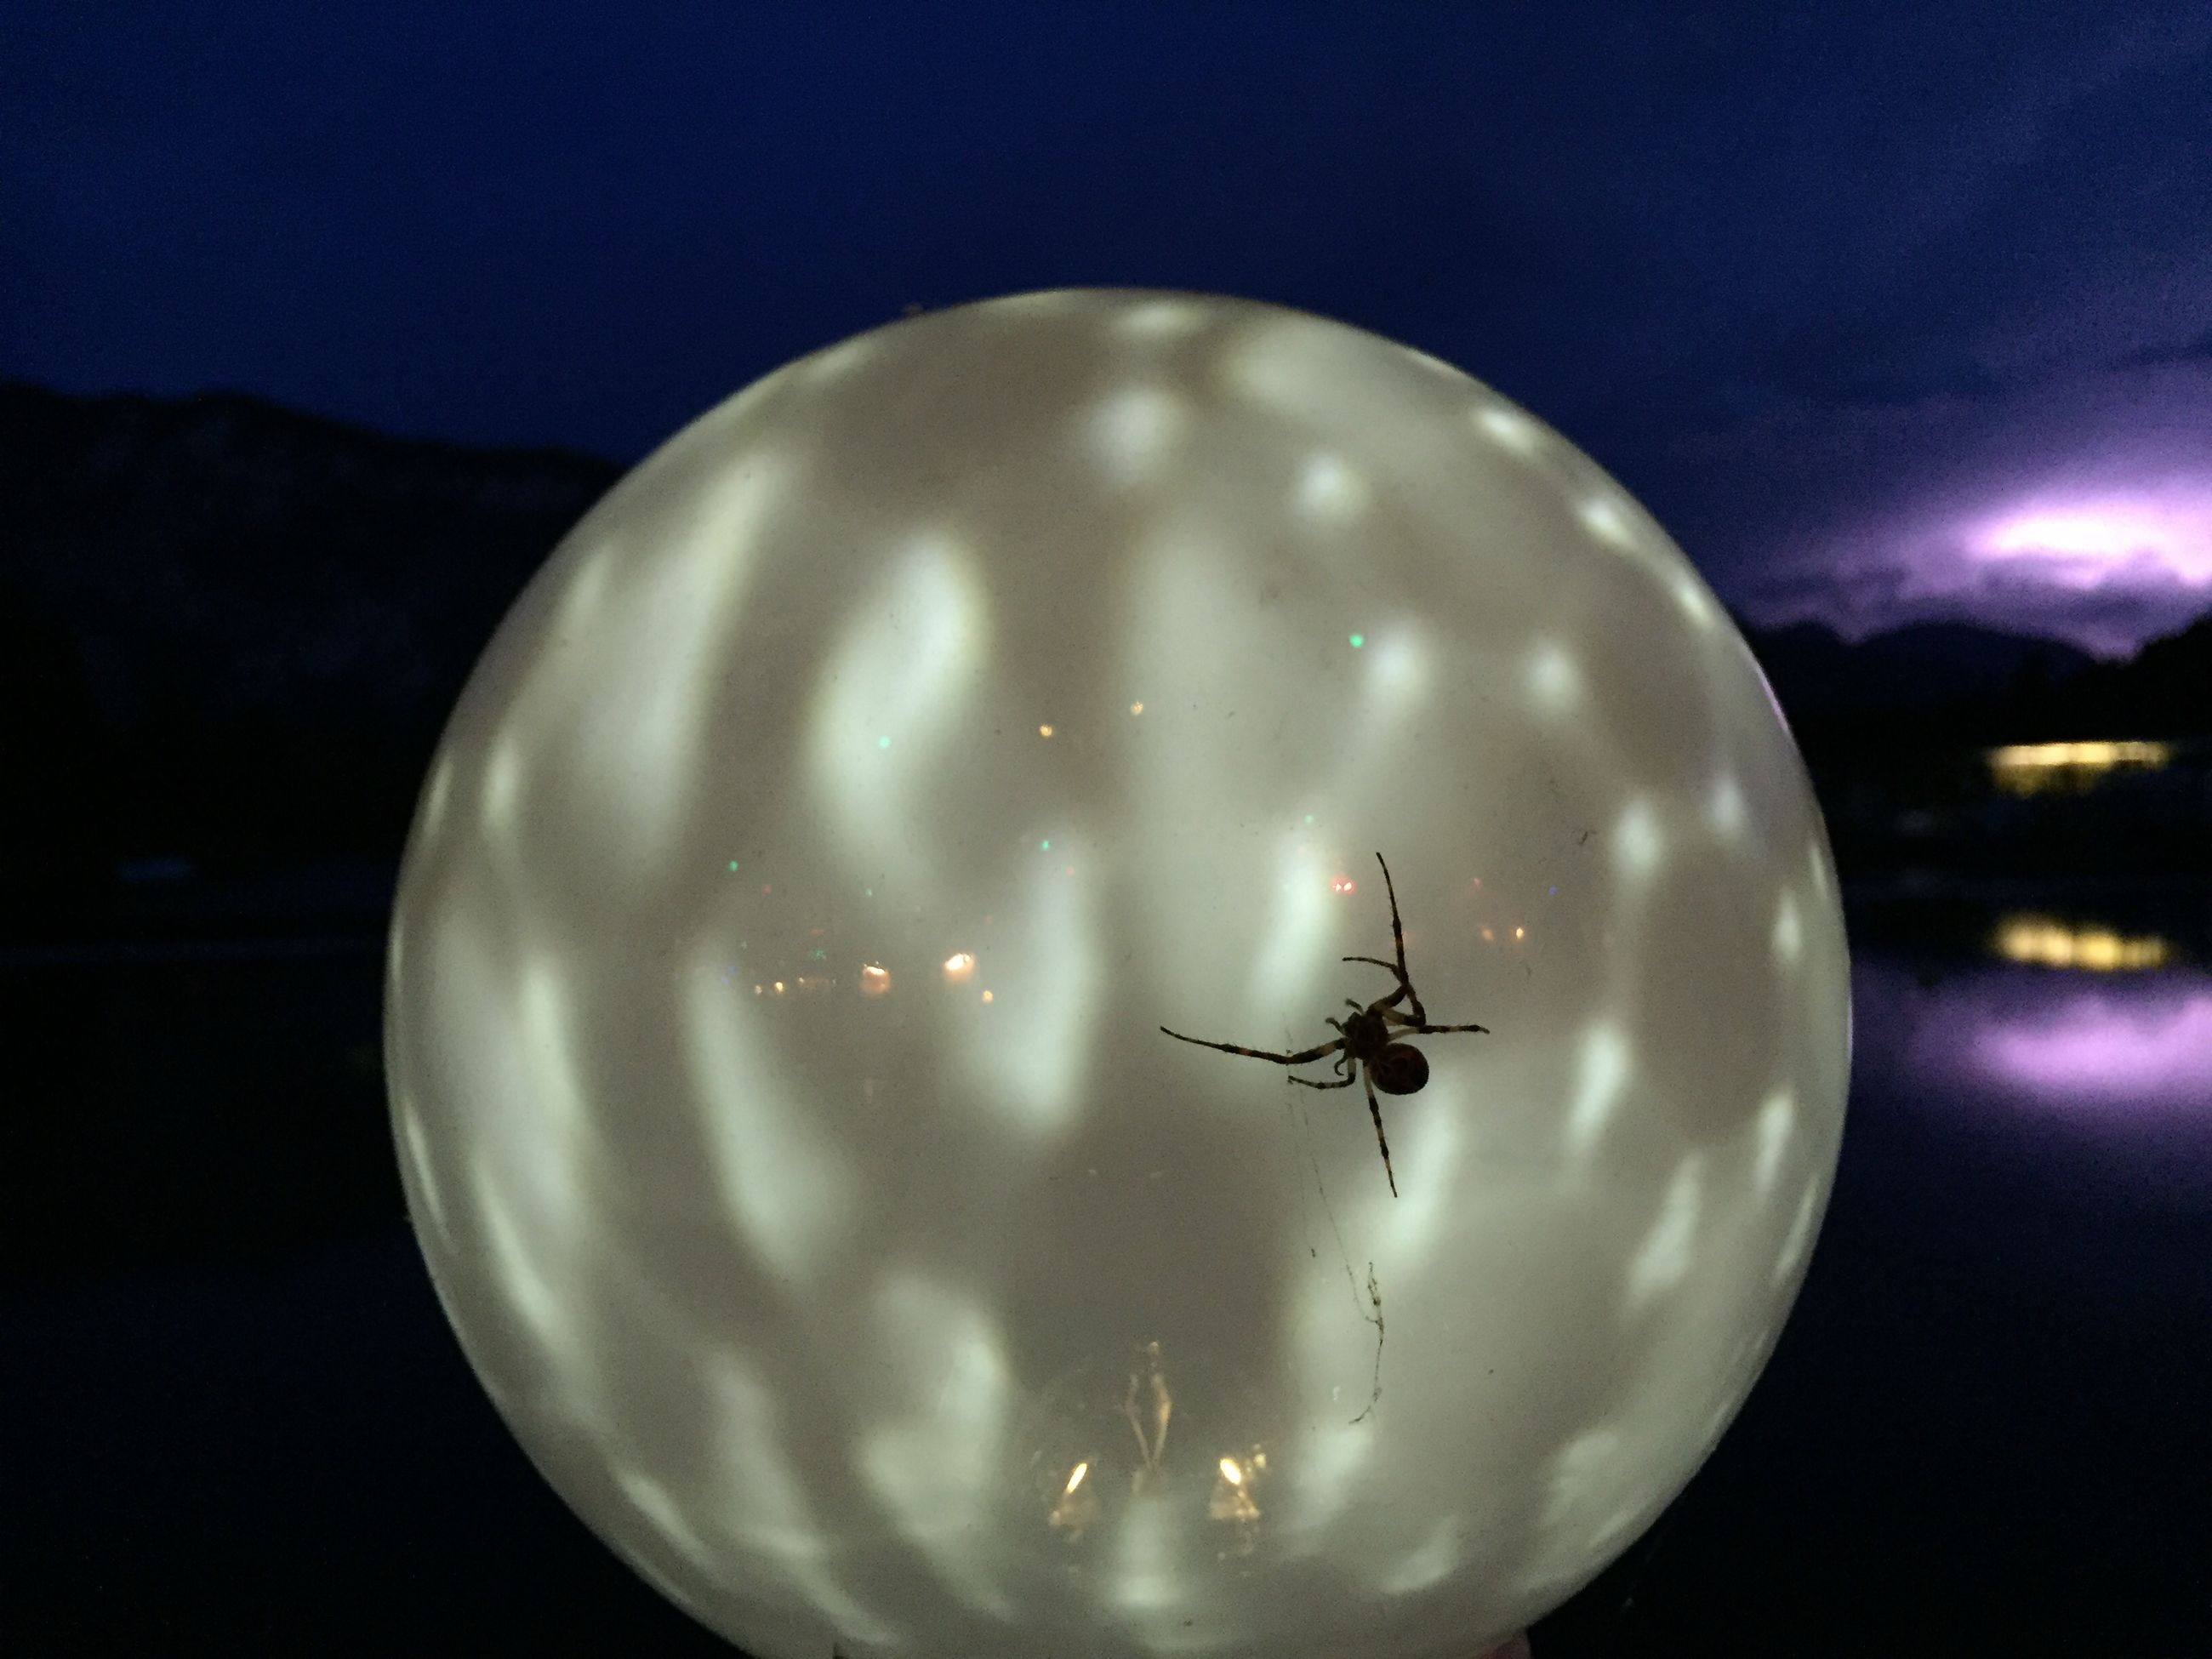 sky, night, flying, invertebrate, moon, nature, circle, illuminated, geometric shape, space, air vehicle, insect, full moon, animal wildlife, airplane, animal themes, focus on foreground, one animal, animal, cloud - sky, no people, astronomy, moonlight